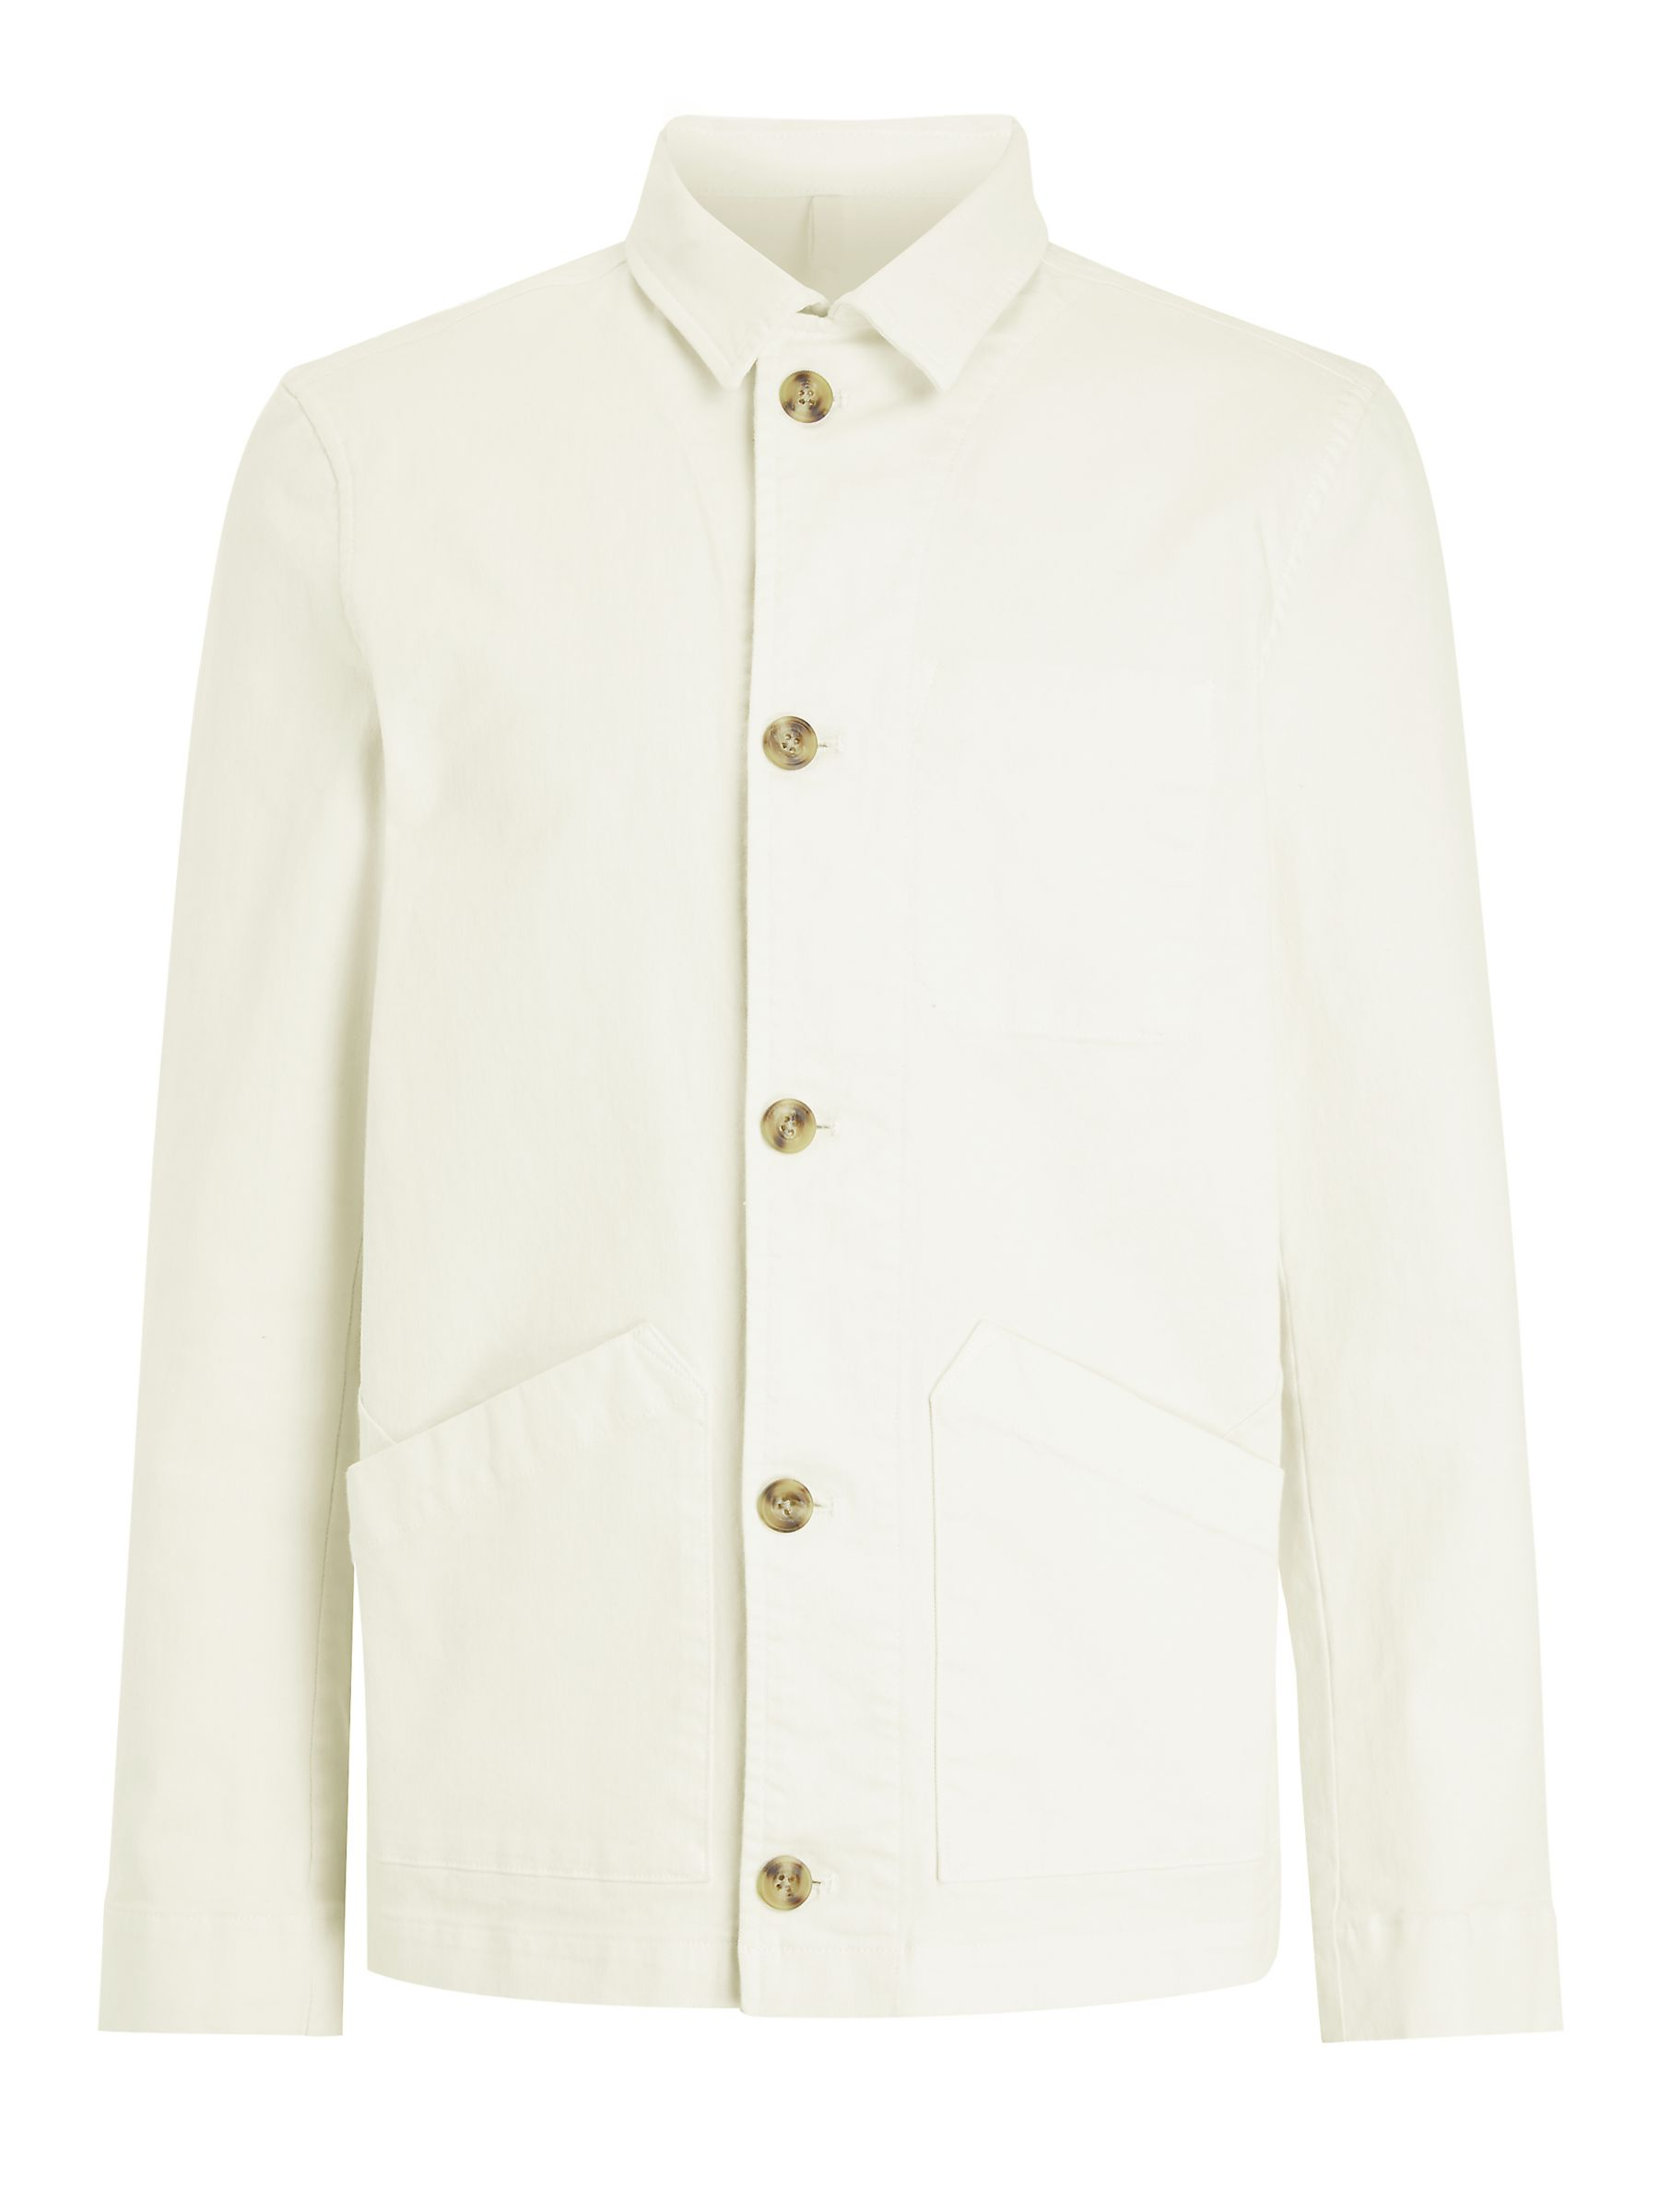 Buy John Lewis & Partners Garment Dye Chore Jacket, Ecru, S Online at johnlewis.com